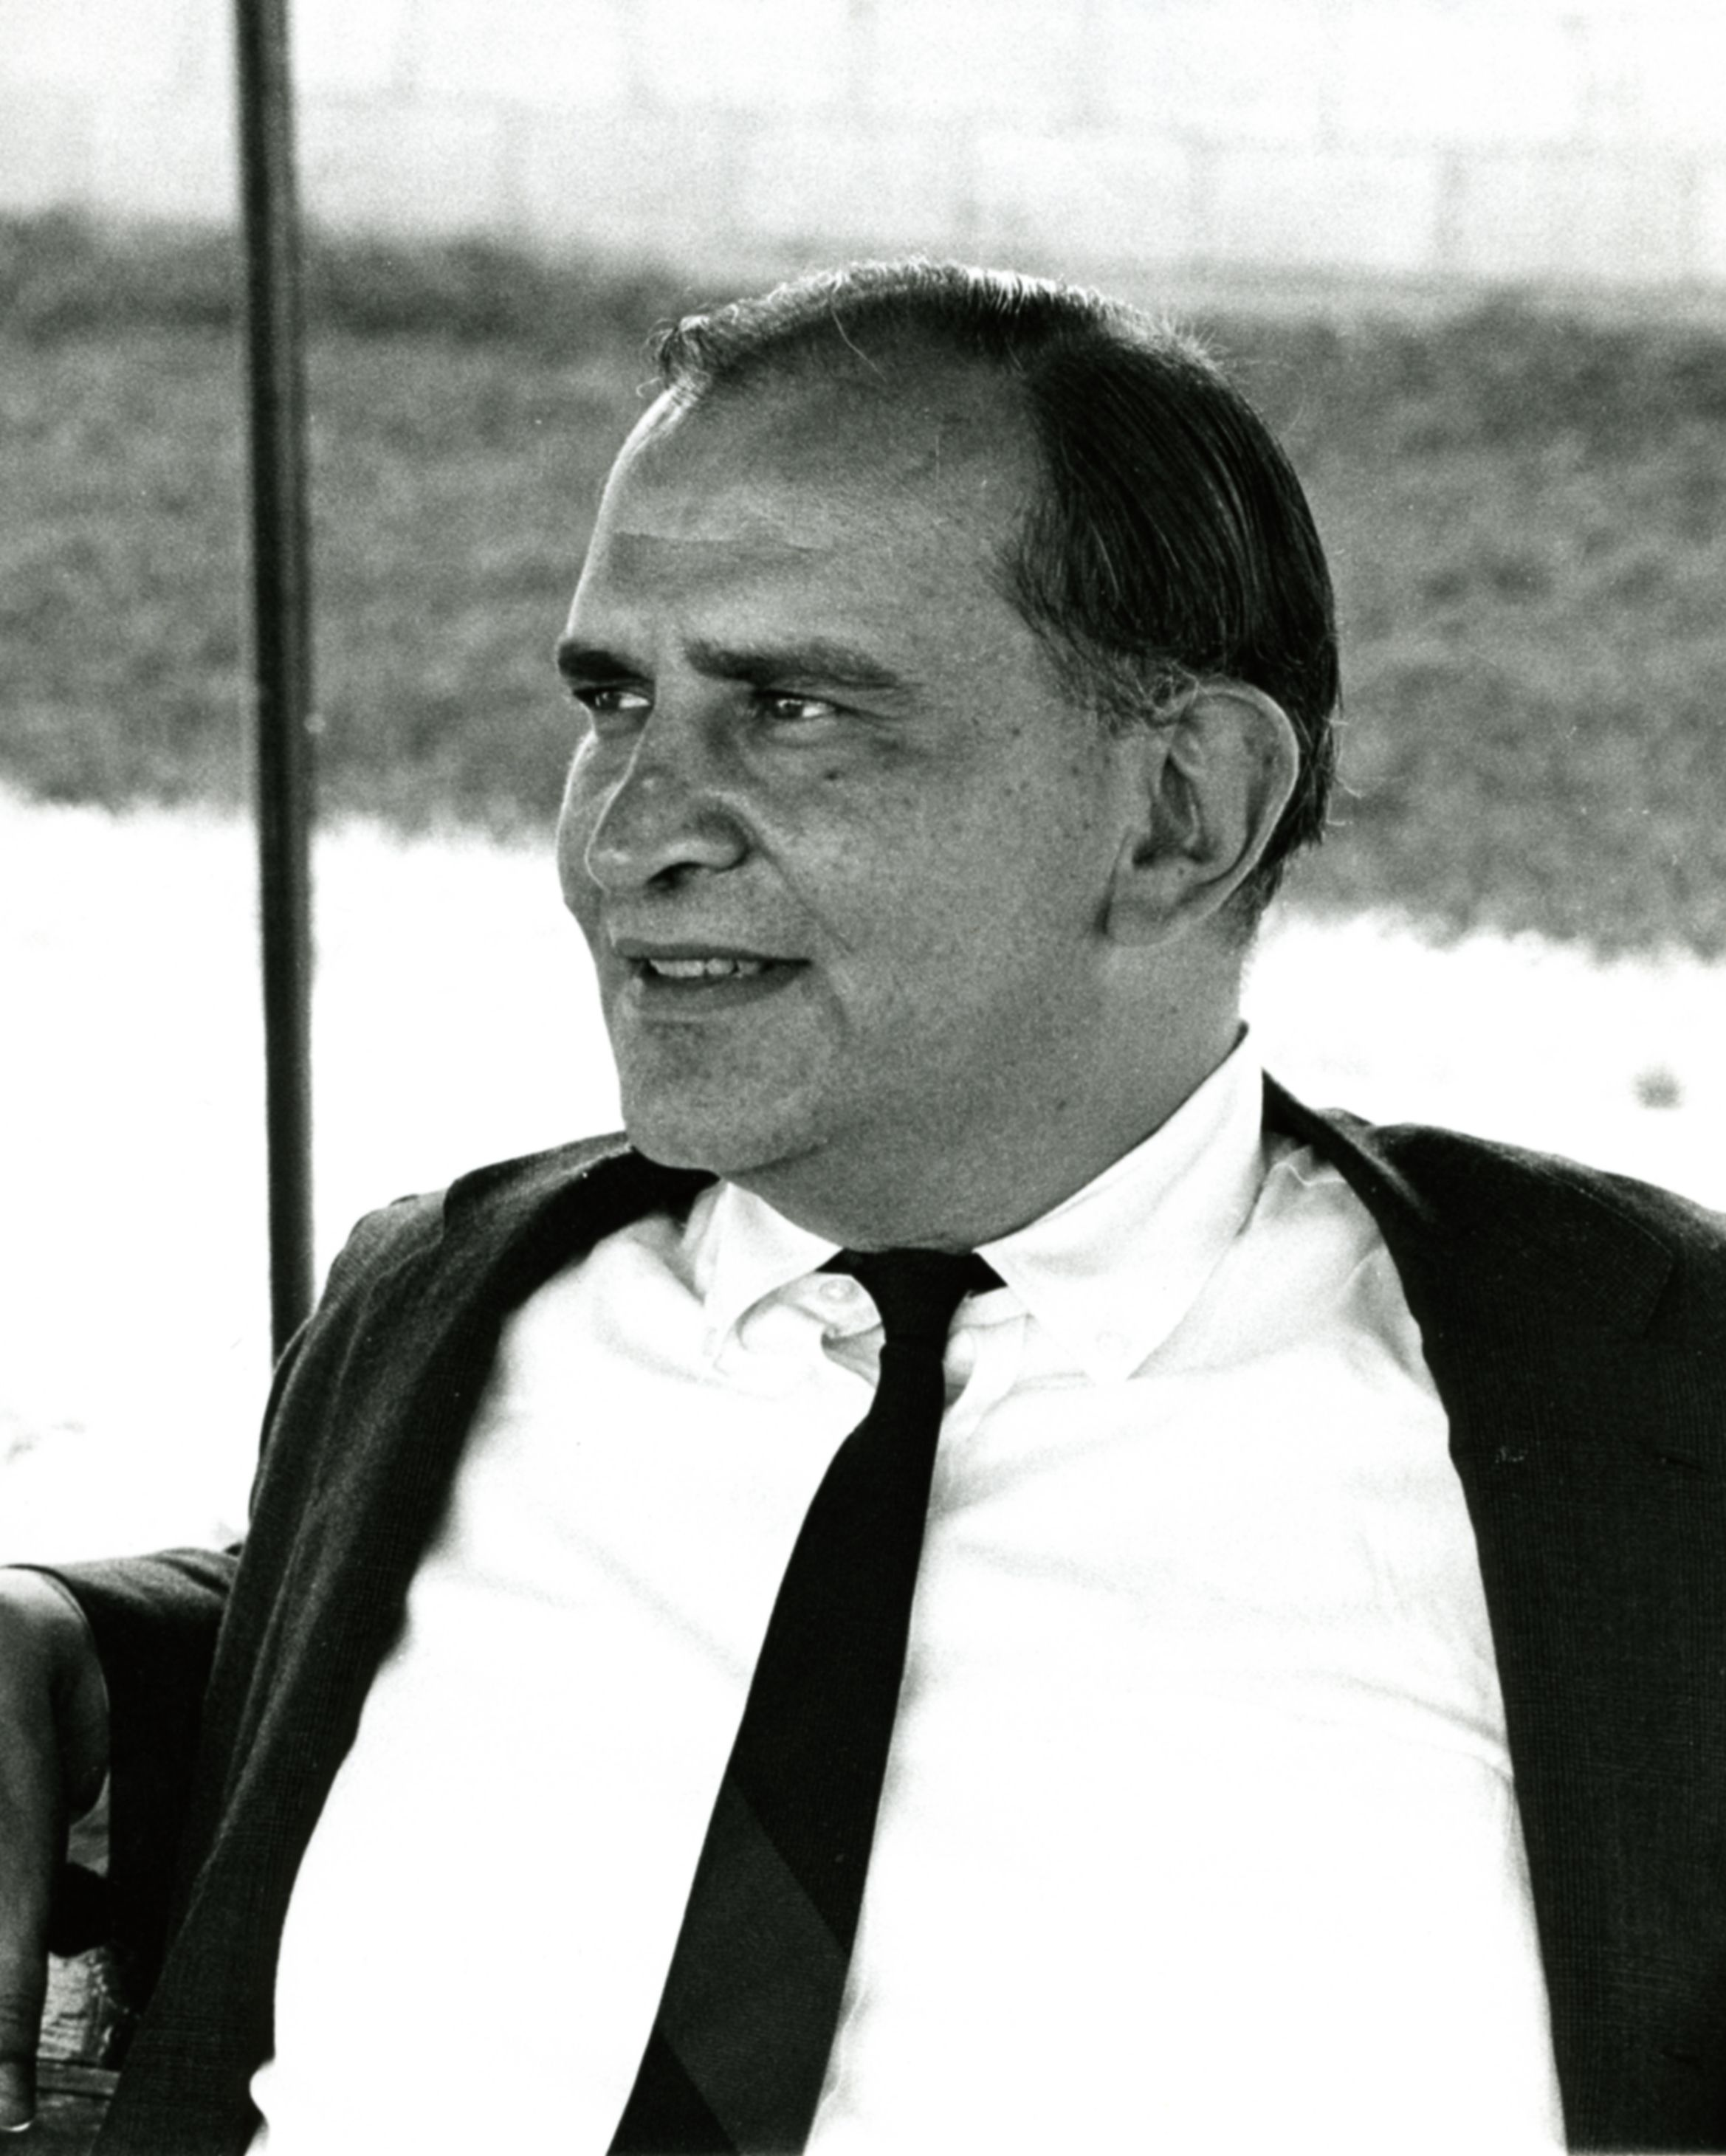 John R. Gaines in 1968 (Keeneland Library Thoroughbred Times Collection)